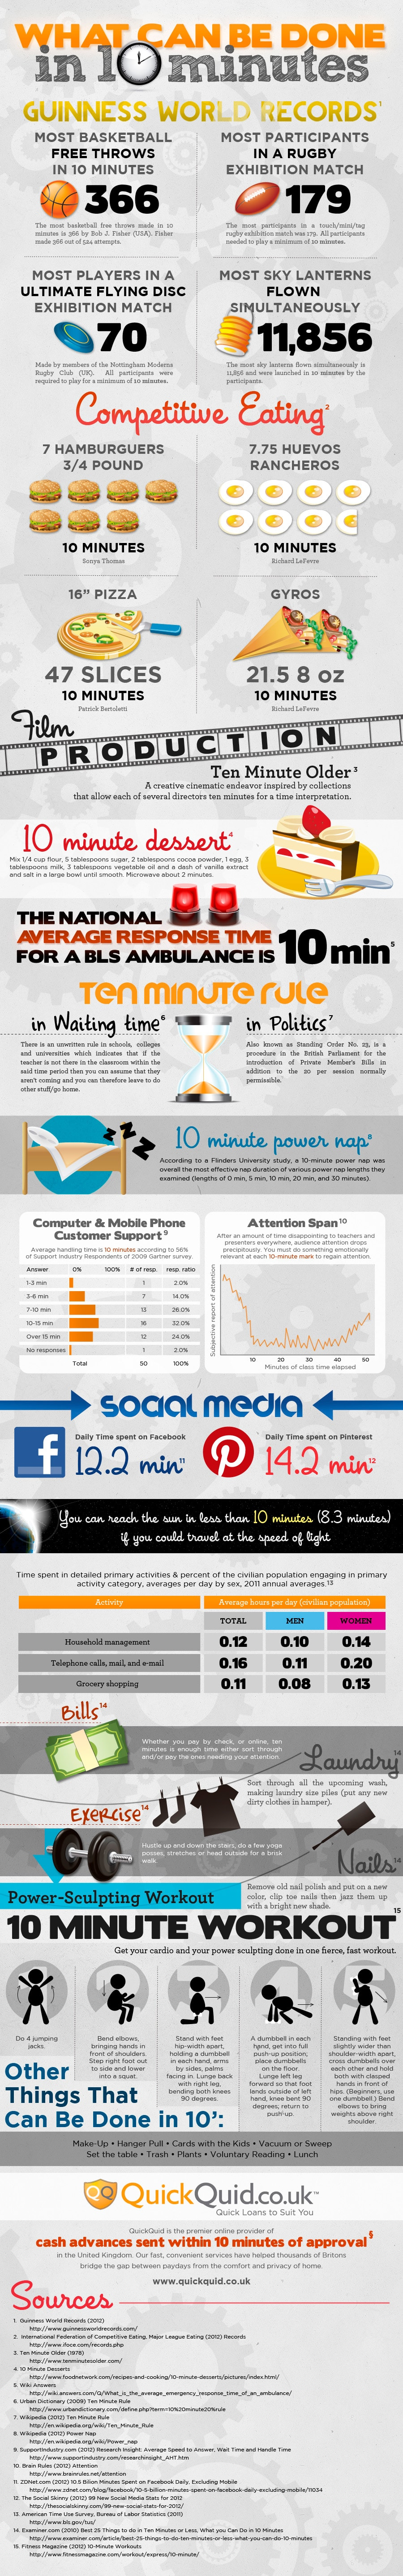 What You Can Do With 10 Minutes Of Spare Time [Infographic]